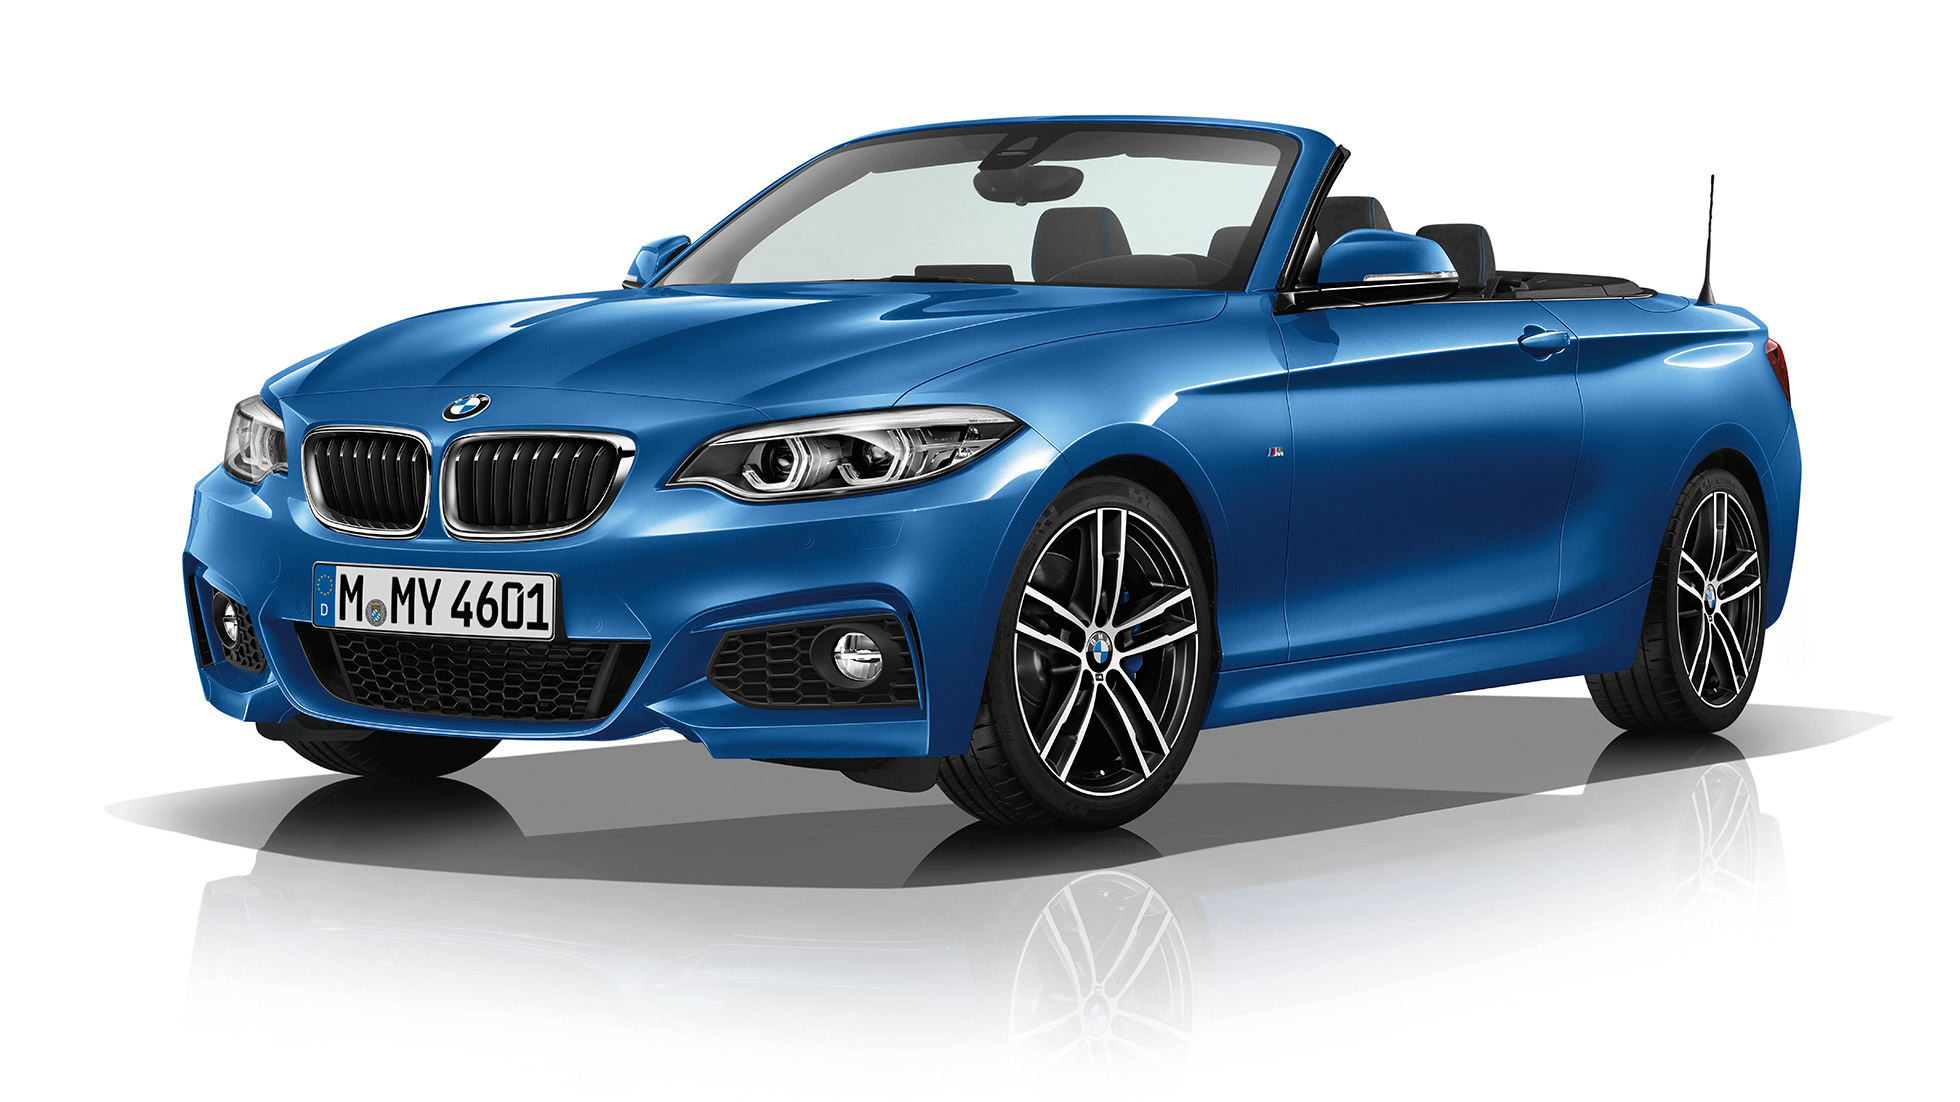 BMW 2 Series Convertible, Model M Sport three-quarter front shot